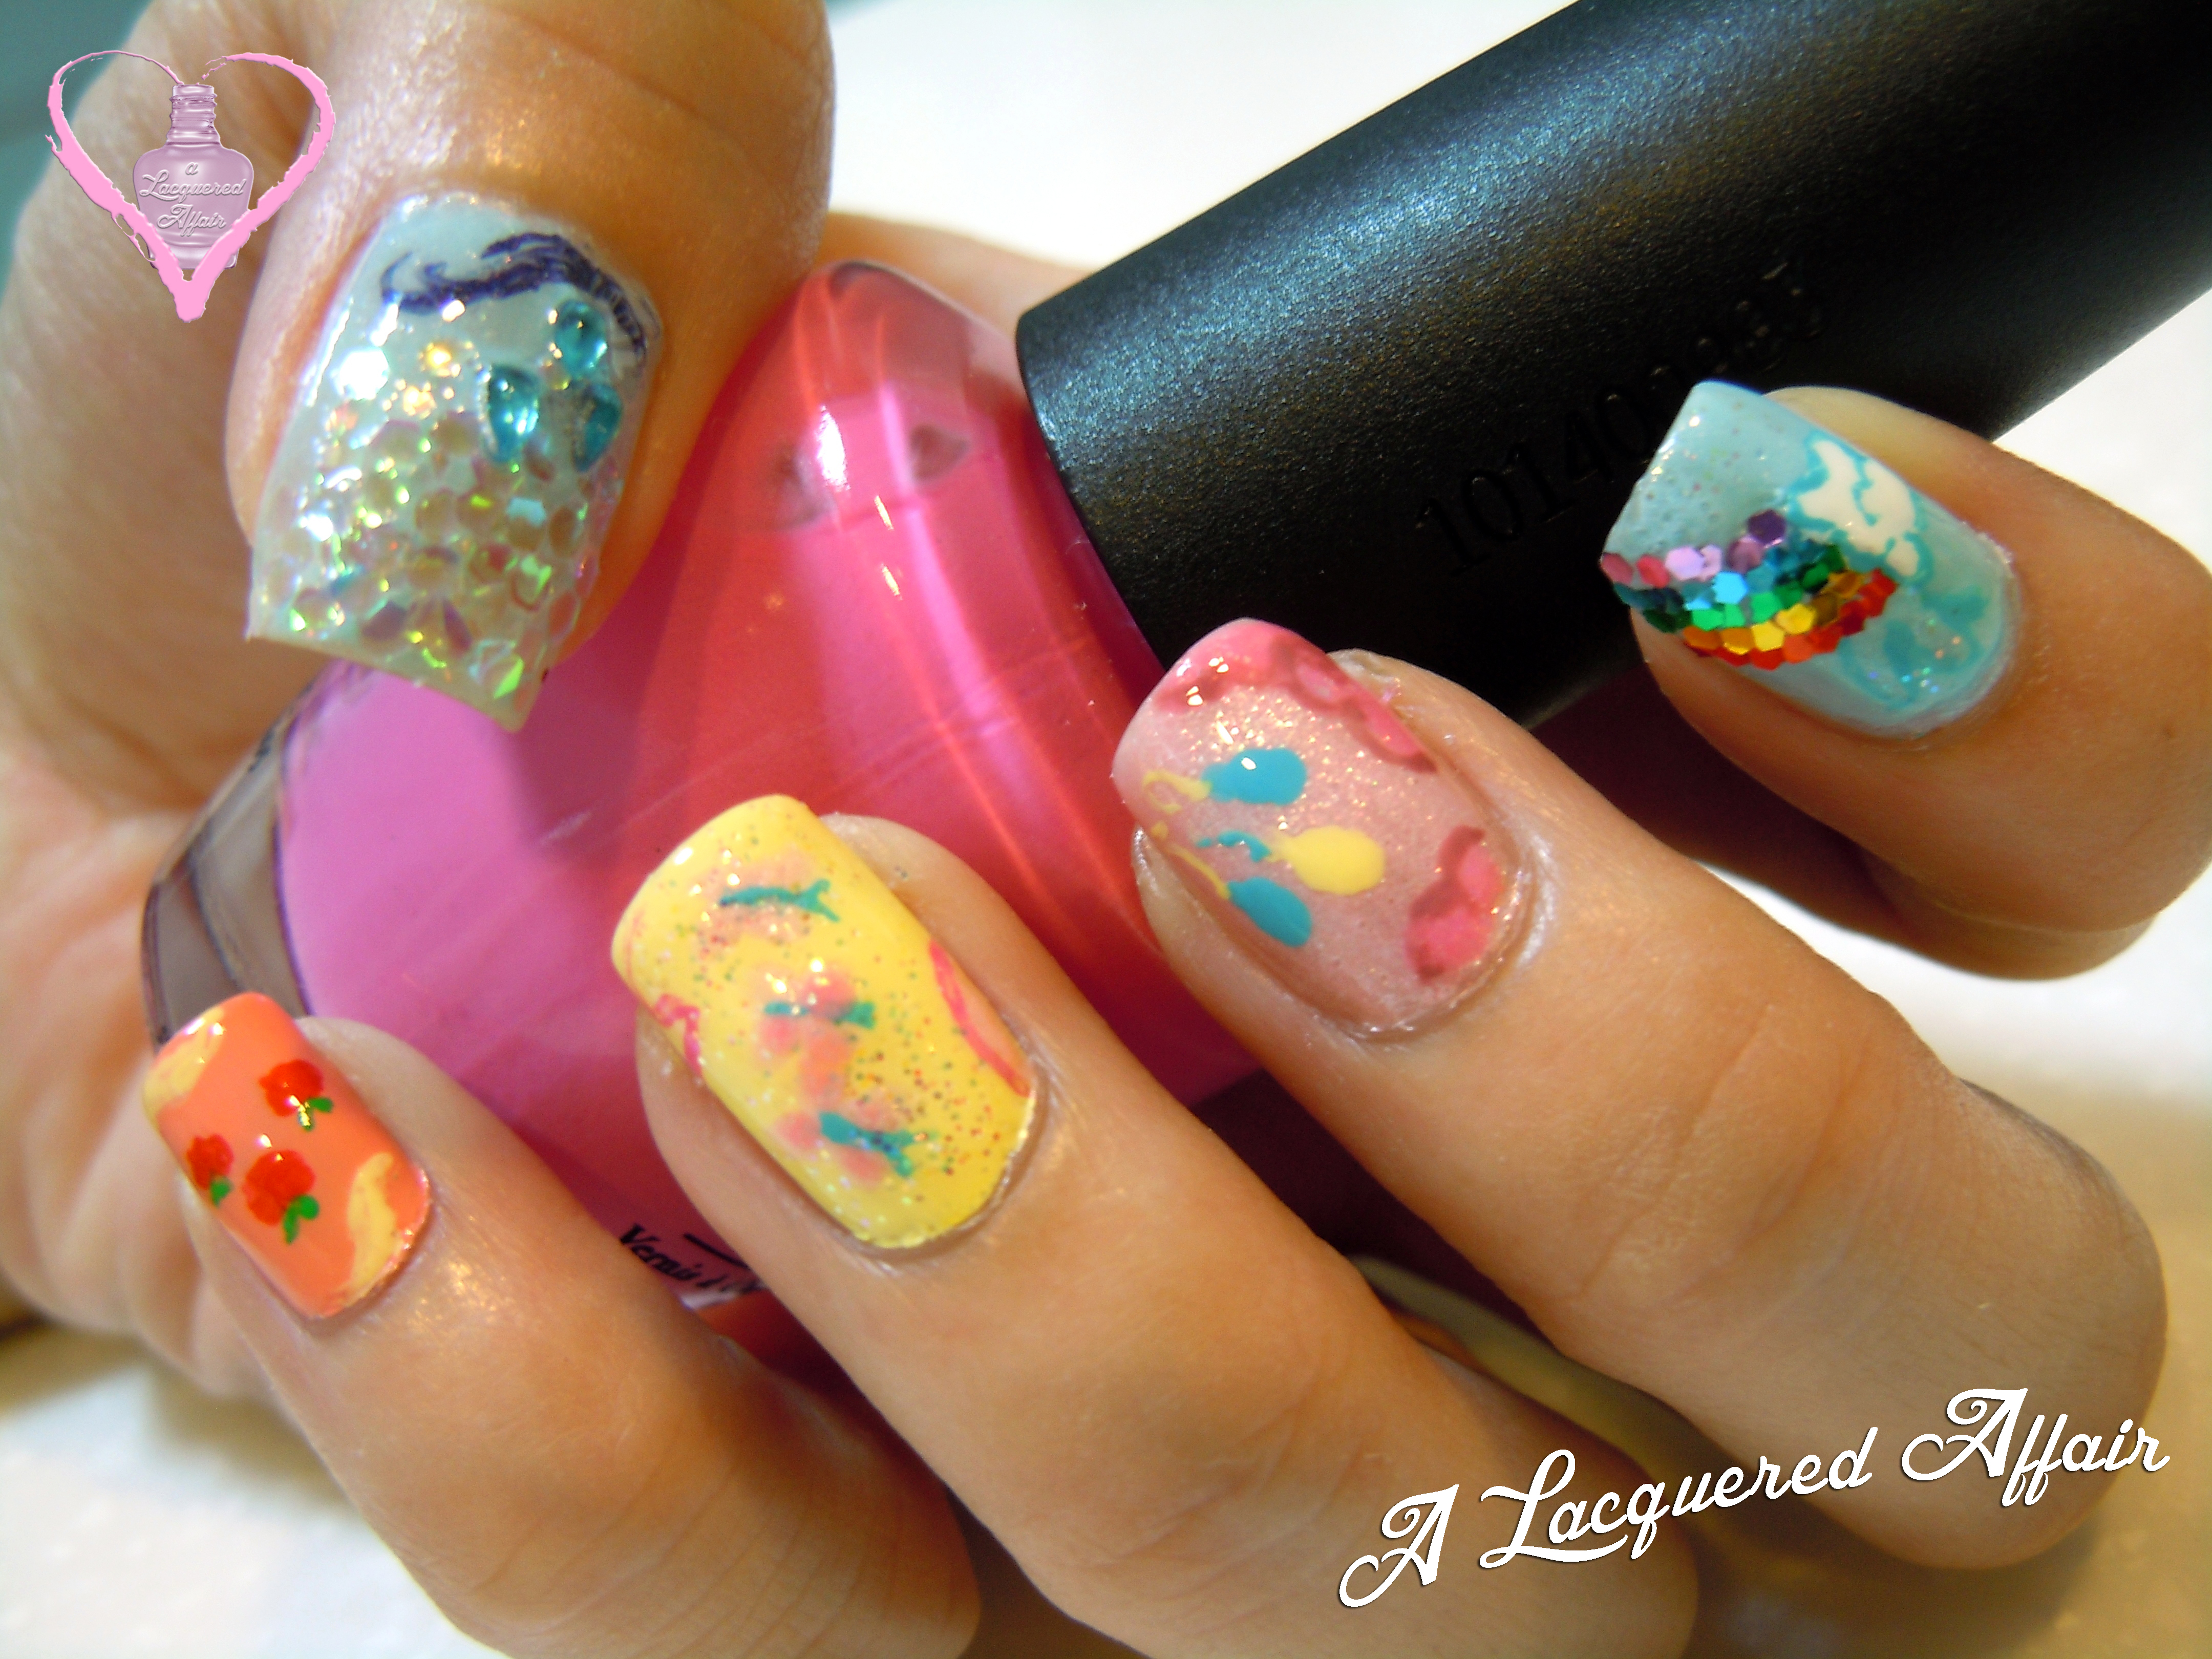 My little pony nail designs images nail art and nail design ideas my little pony nail designs choice image nail art and nail my little pony nail designs prinsesfo Gallery